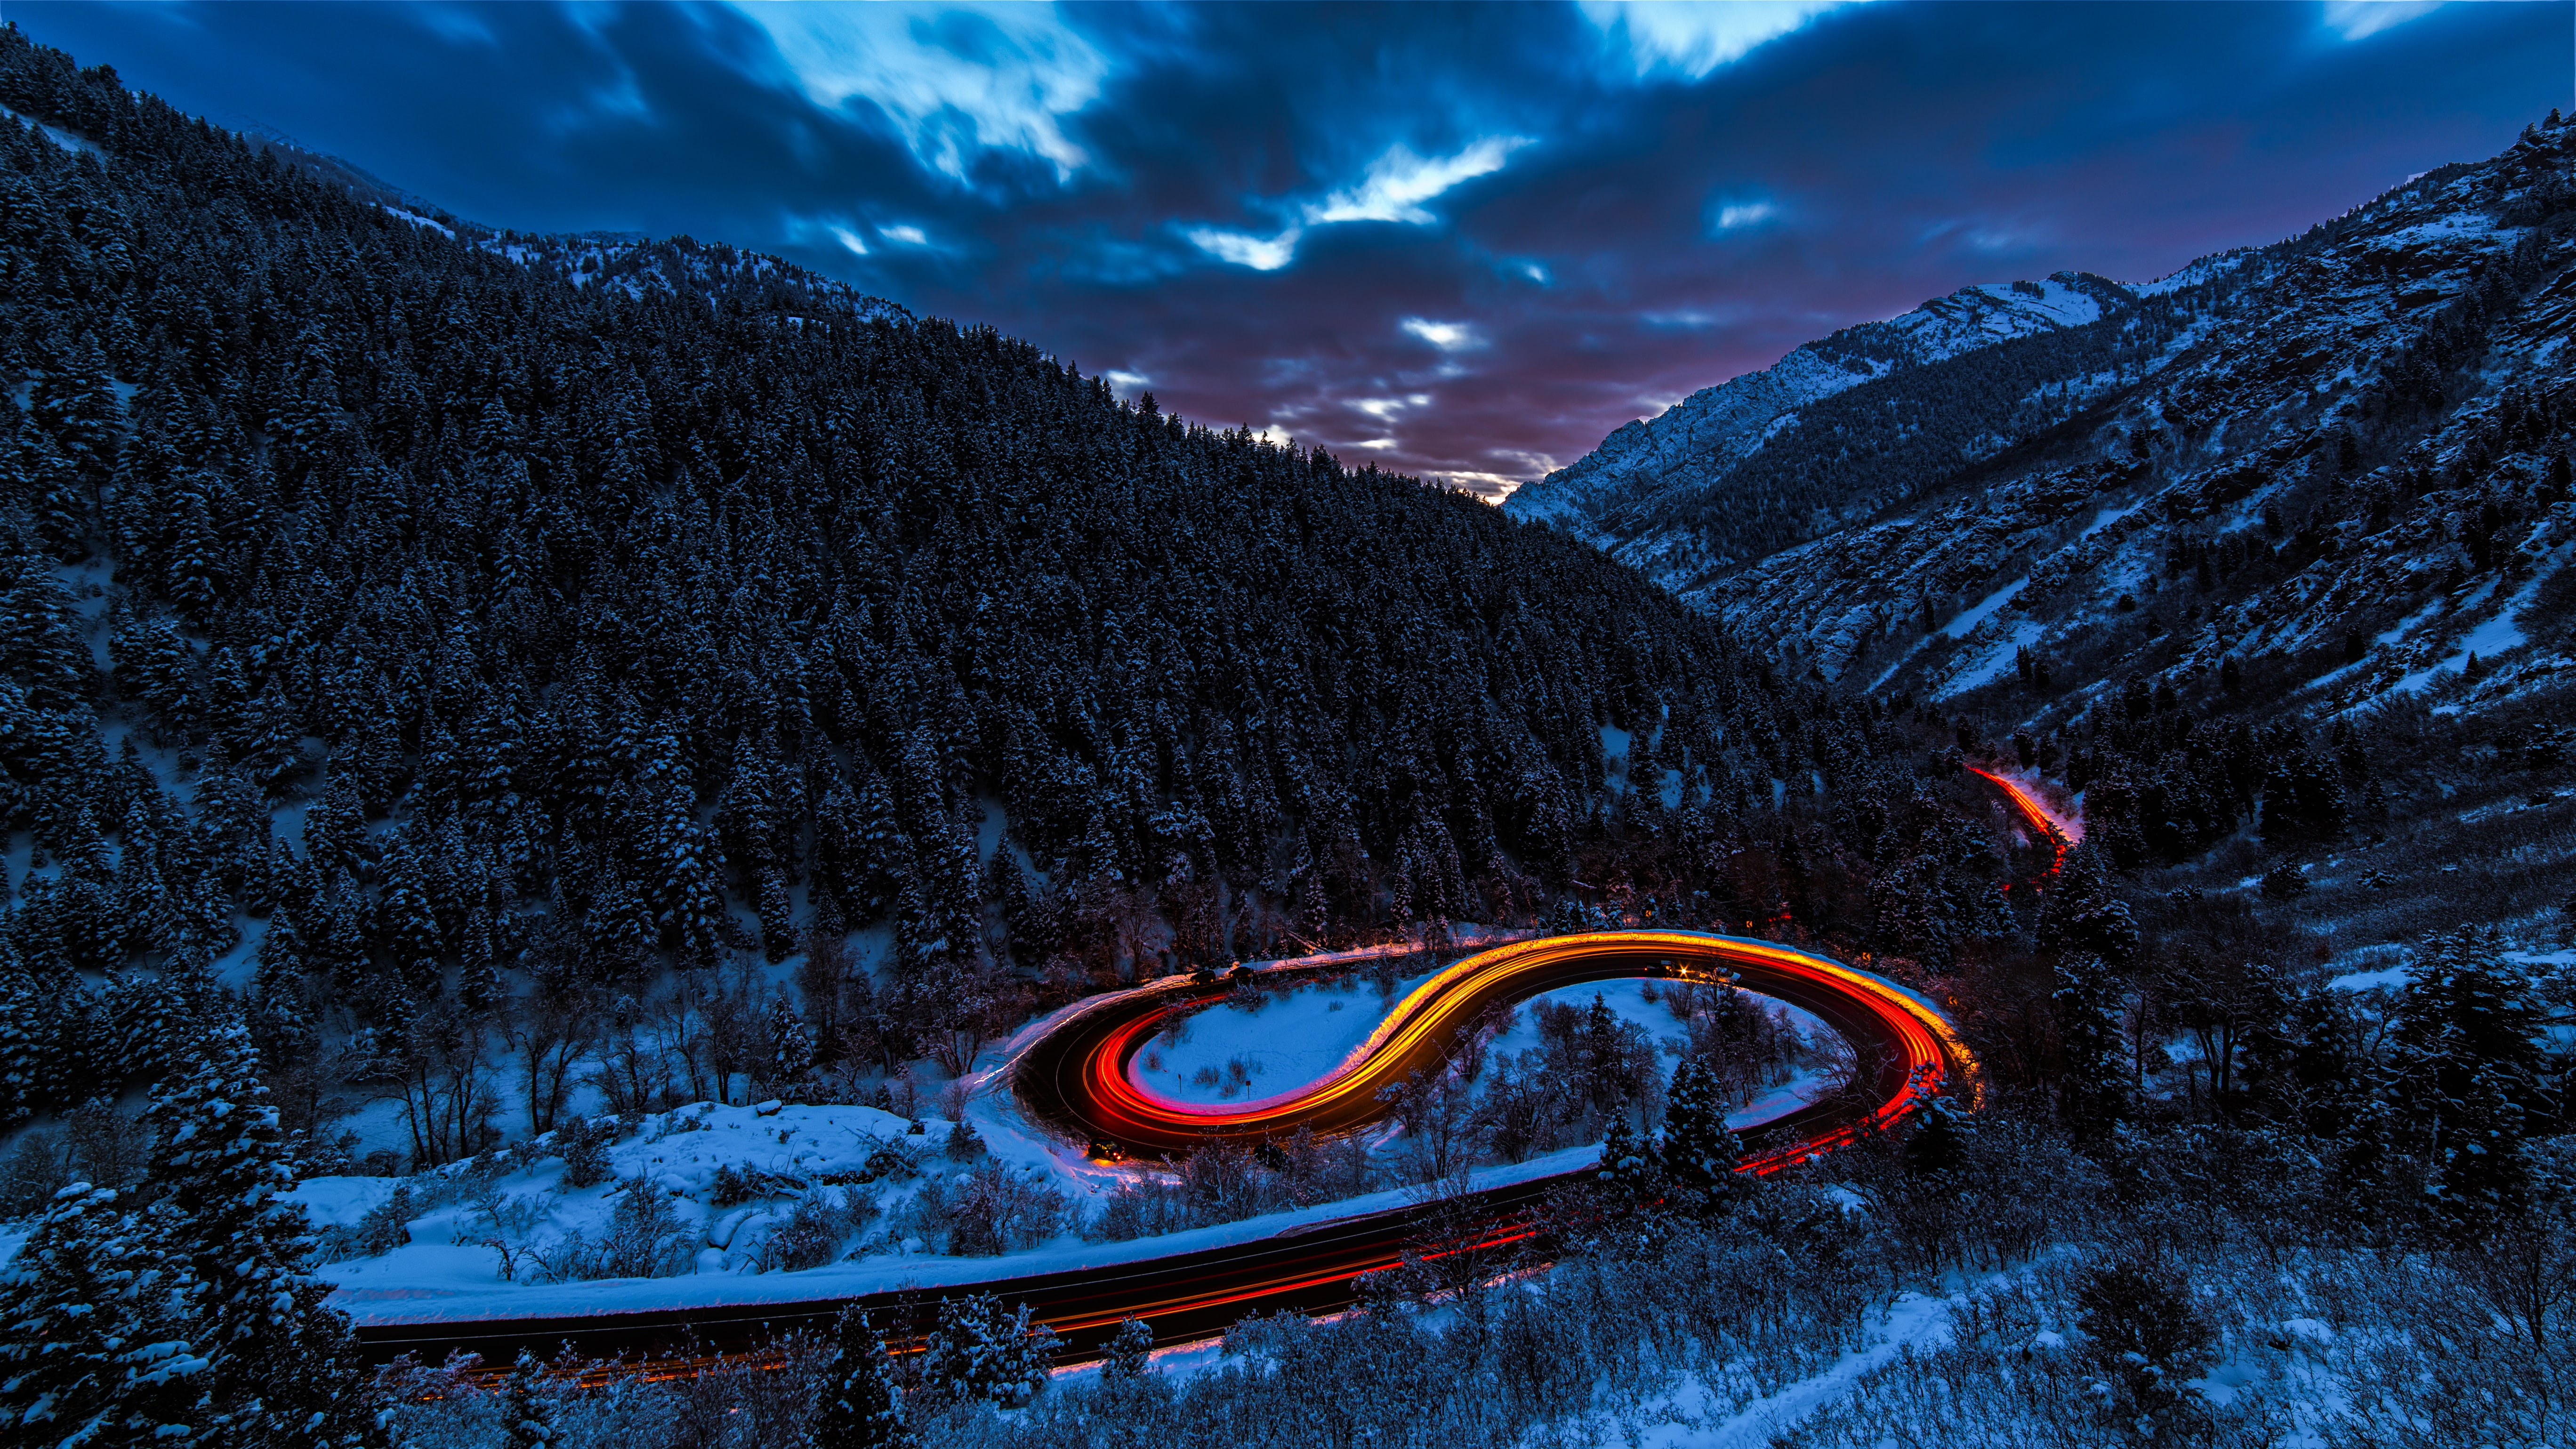 A car driving through the road winding mountains covered with snow.